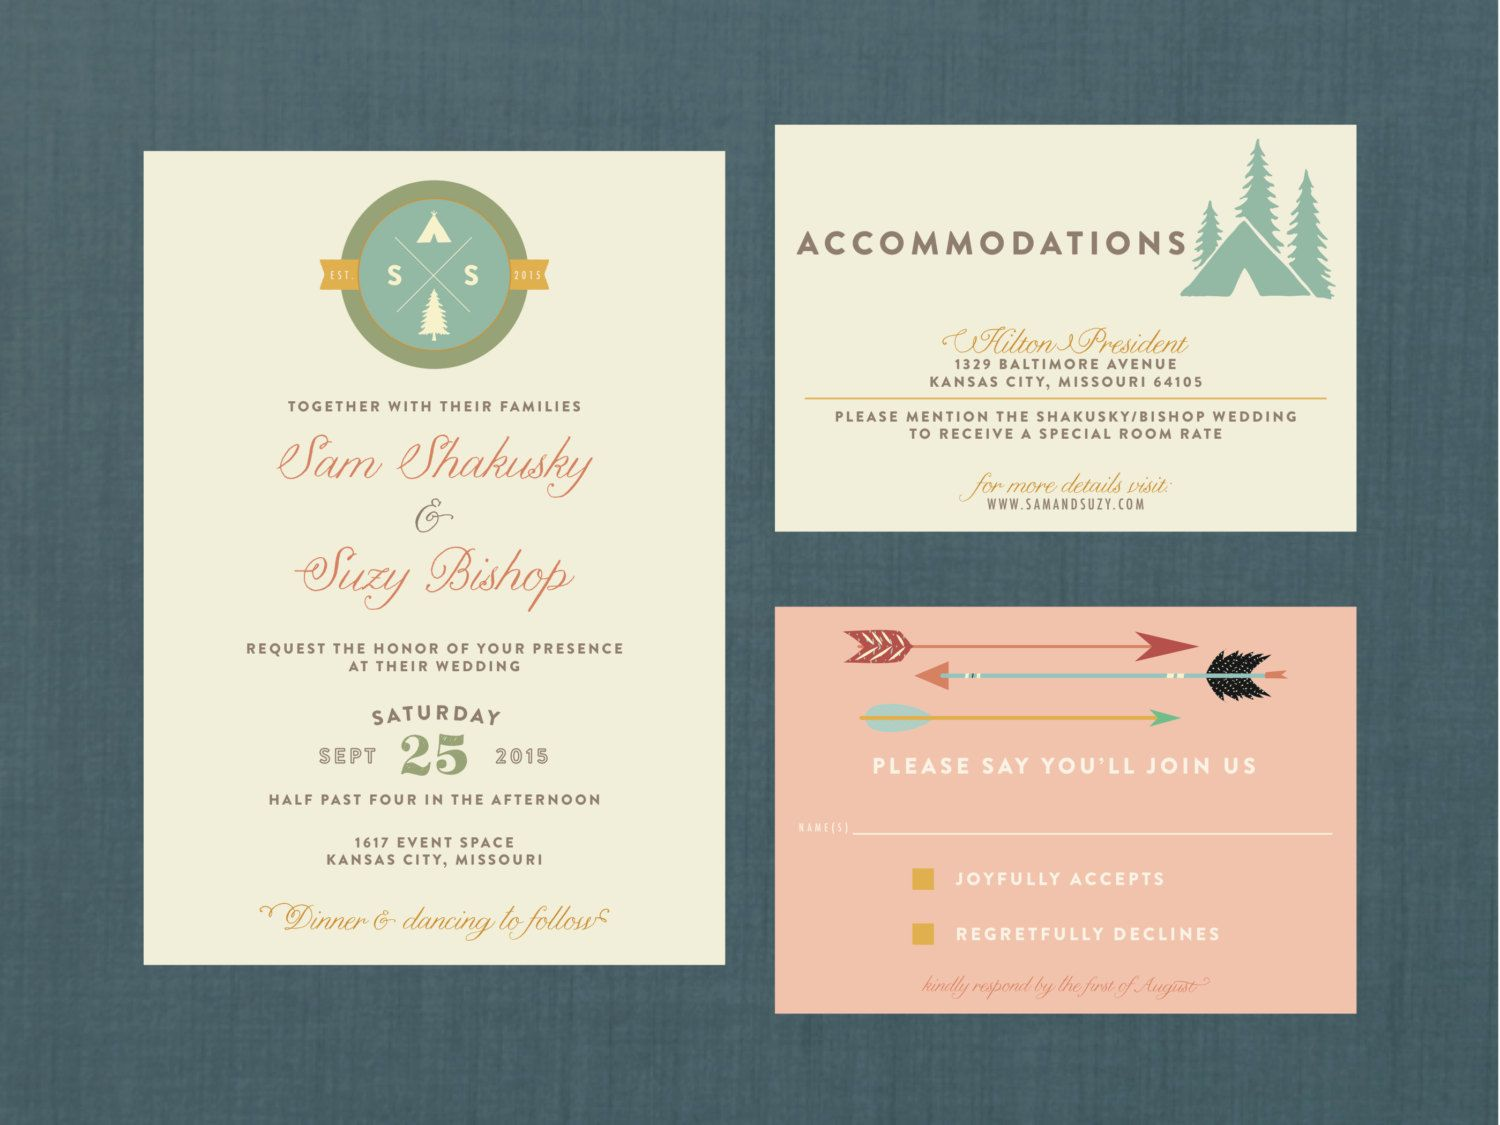 wes anderson style stationery - Google Search | Robinson Wedding ...